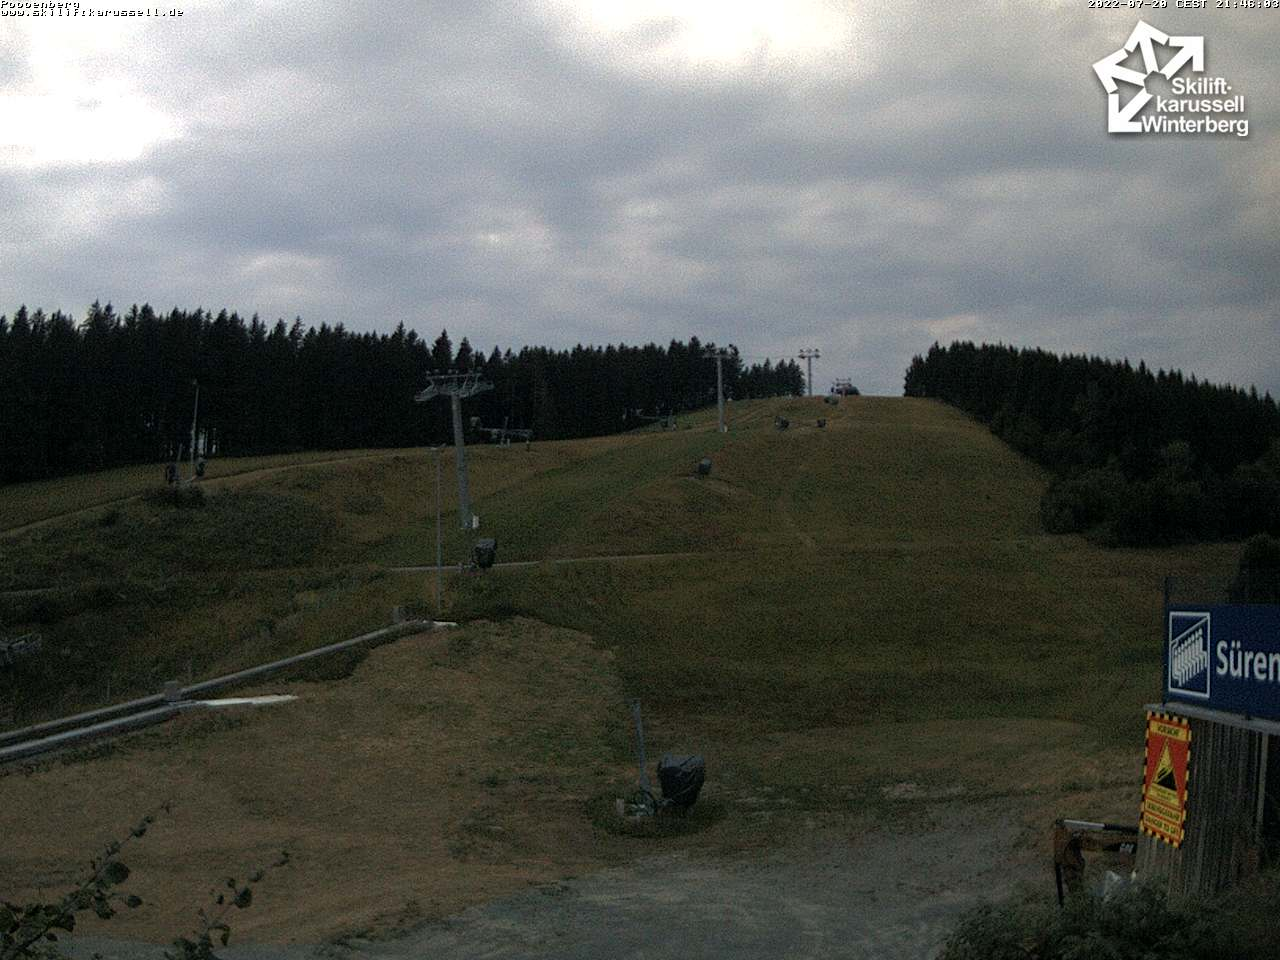 Skiliftkarussell Winterberg - Webcam 5